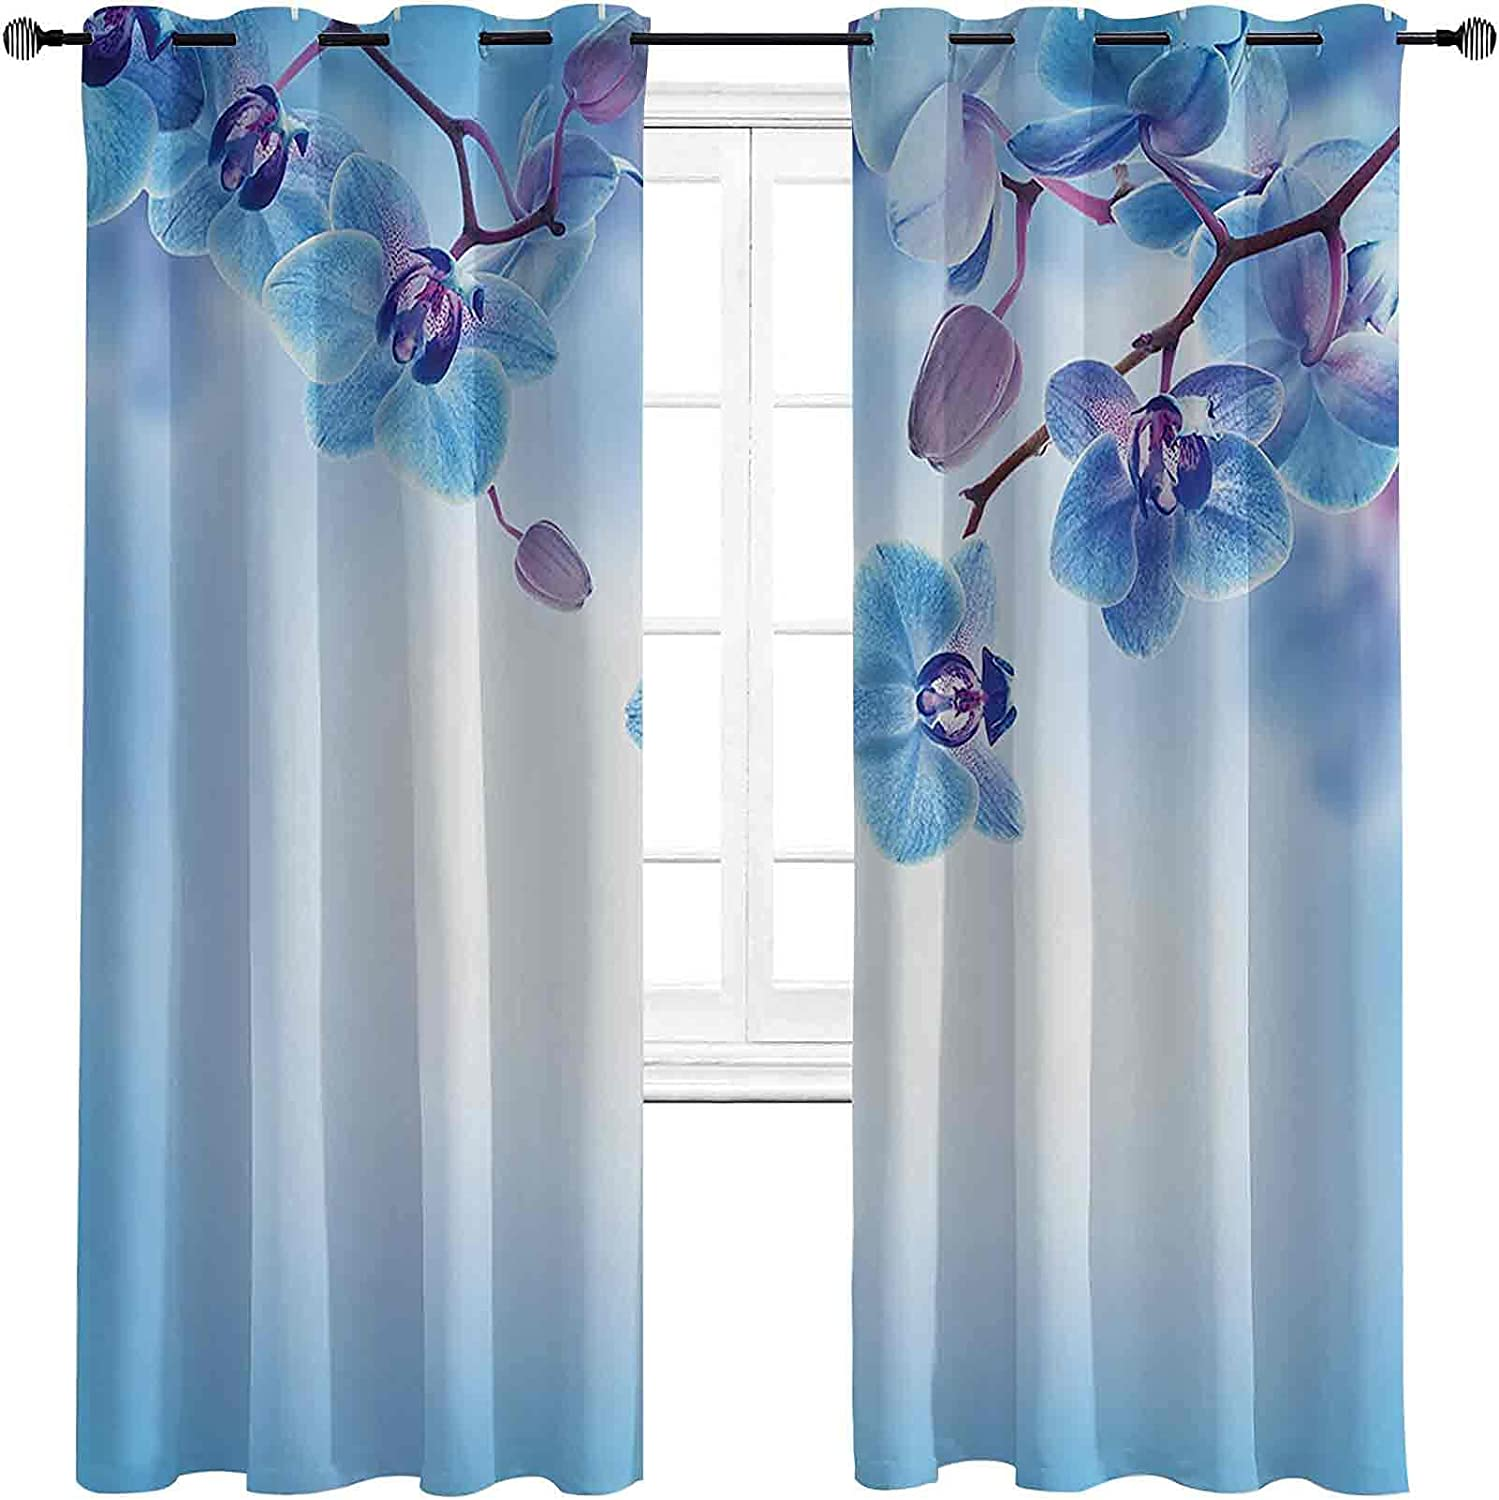 Flower Max 42% OFF Decor Bedroom Blackout Curtains Orchids Chicago Mall Flowers Natural